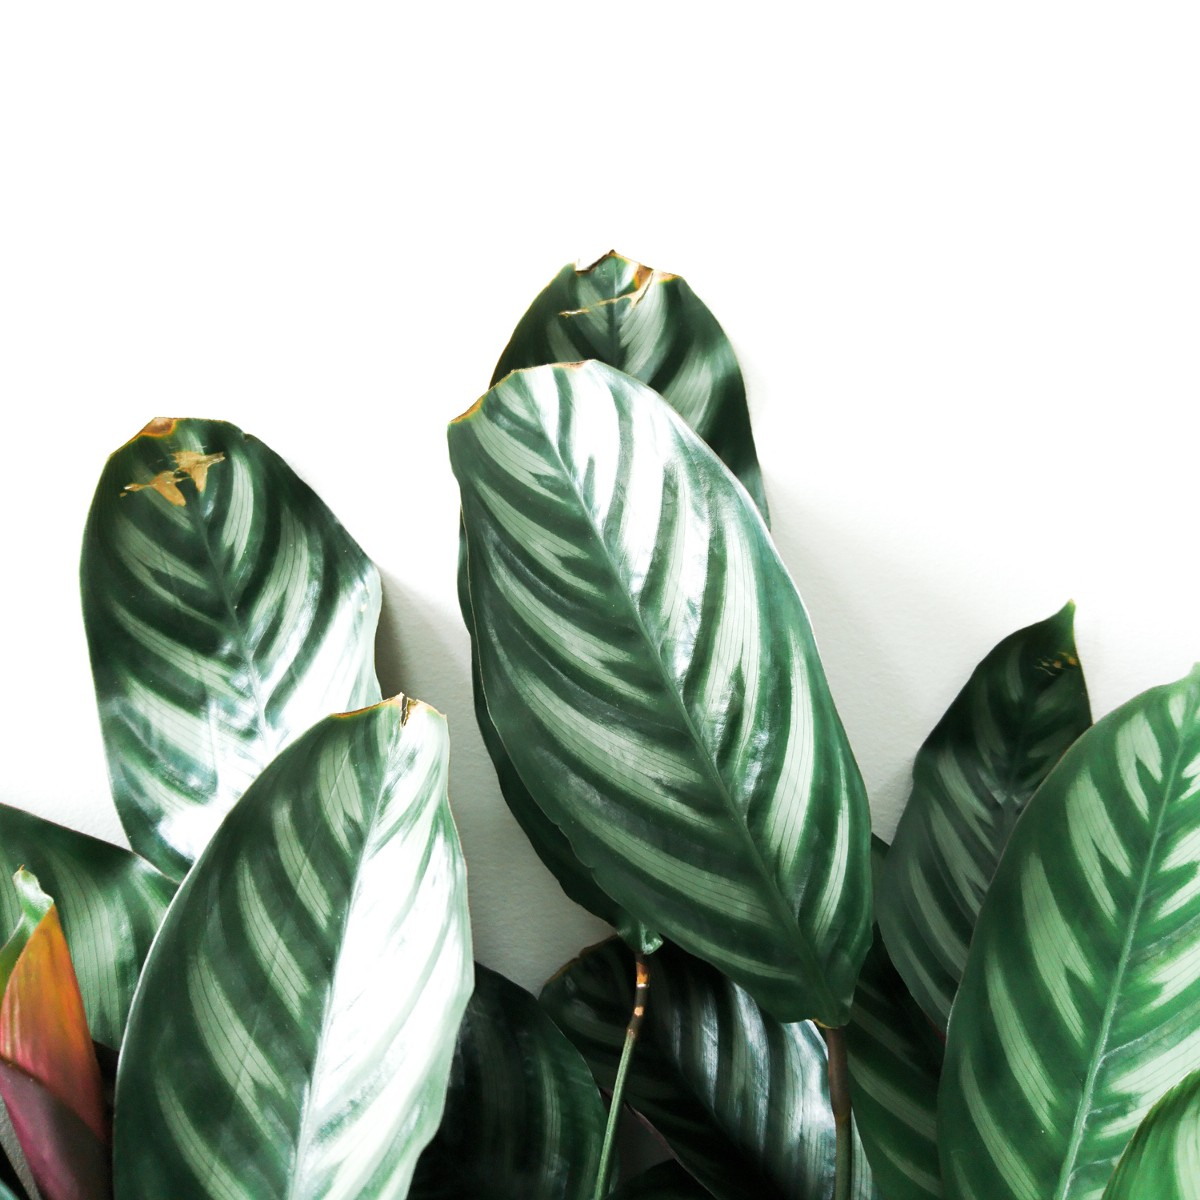 Doom and Bloom: The Growing Millennial Obsession with Houseplants